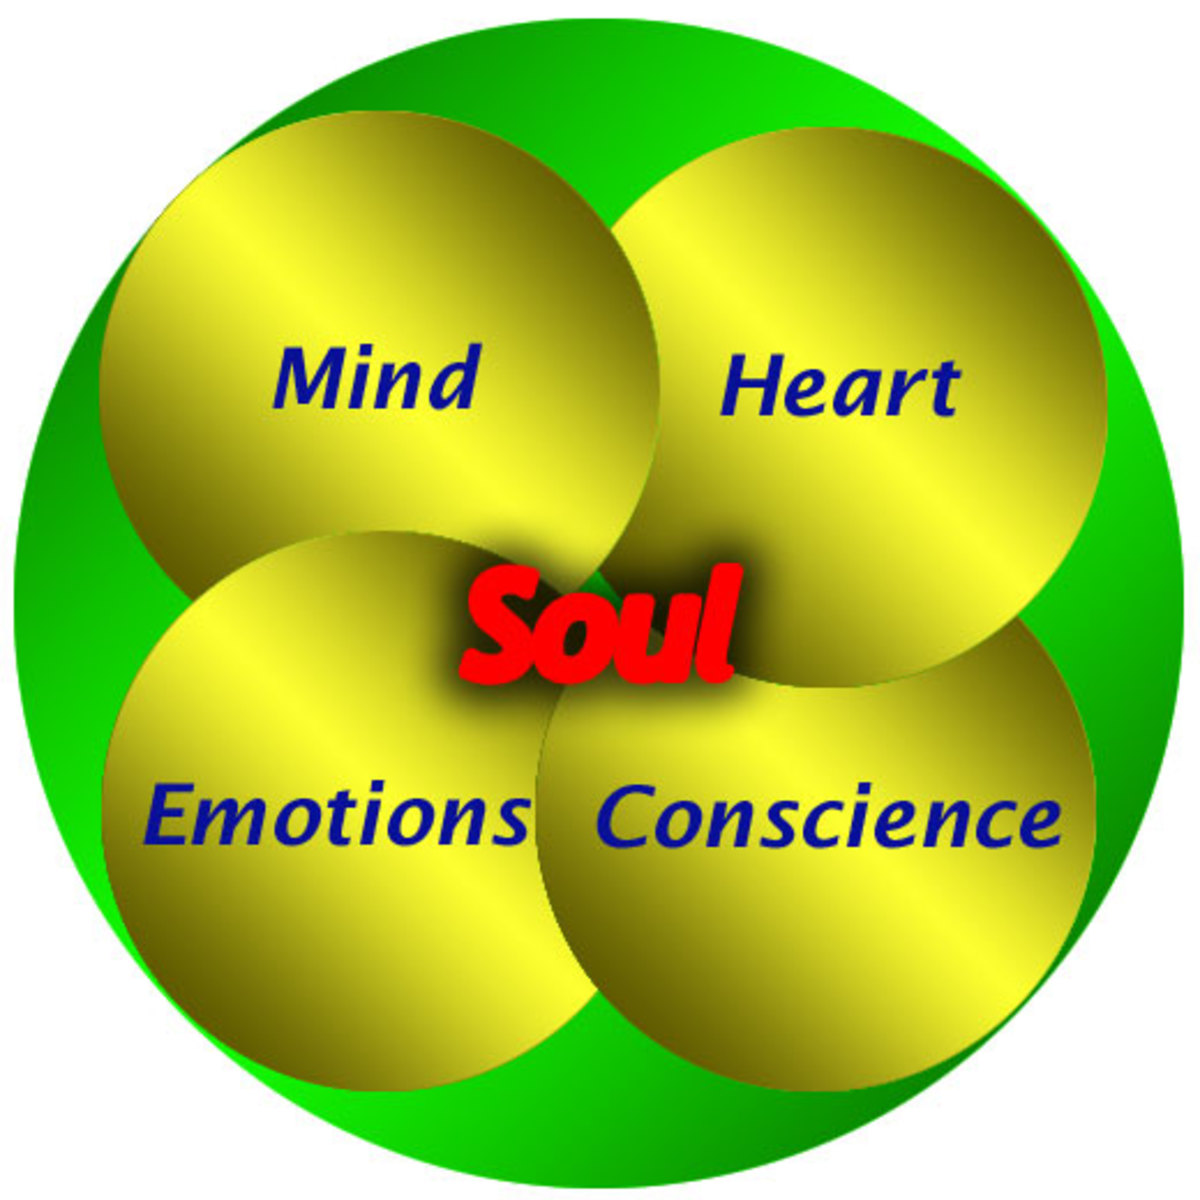 Dissecting the Soul - Mind, Heart, Emotions and Conscience